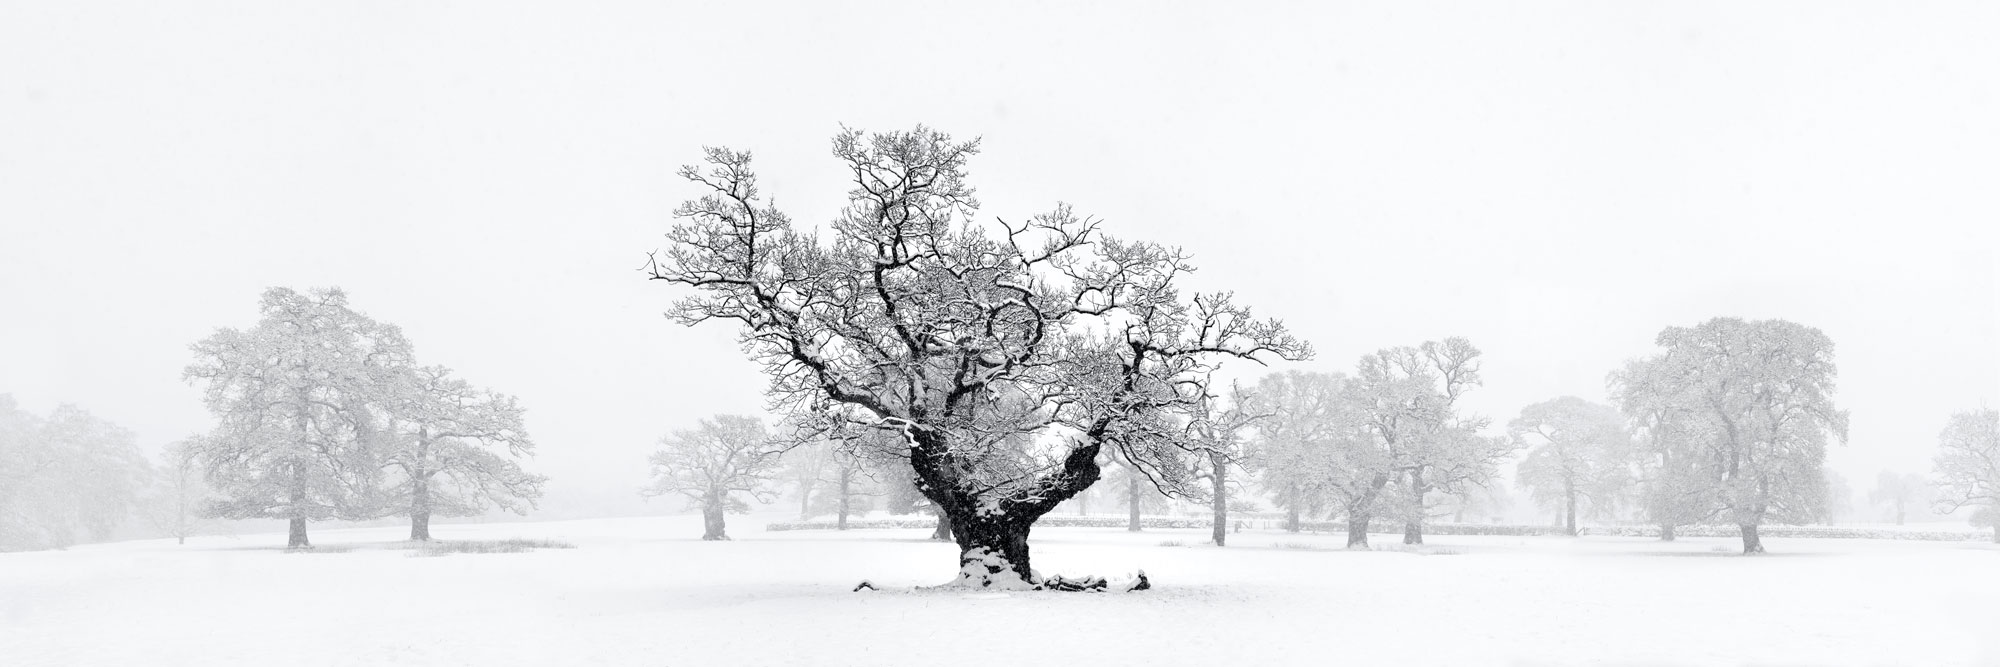 black and white print of an oak tree in winter